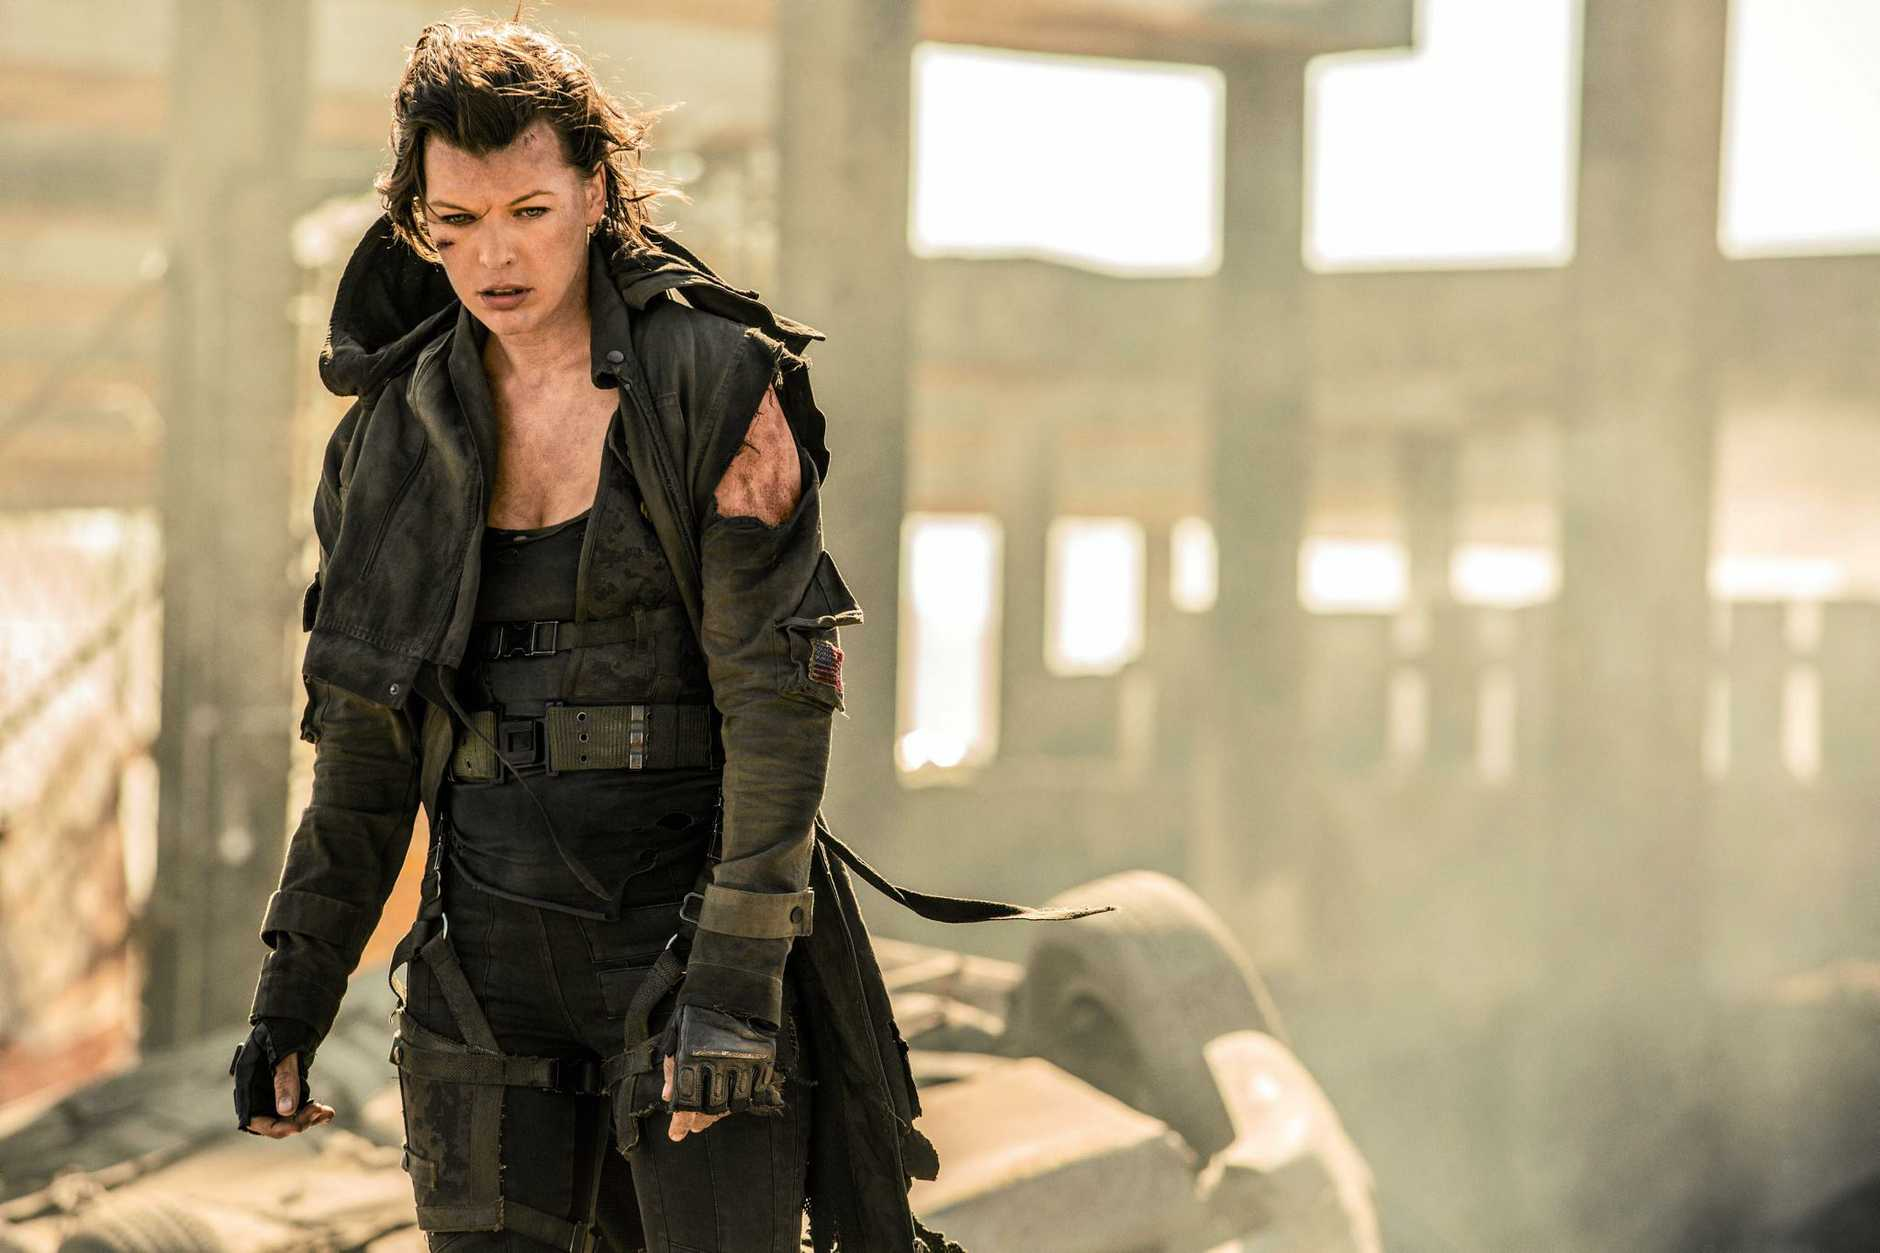 Milla Jovovich in a scene from the movie Resident Evil: The Final Chapter.